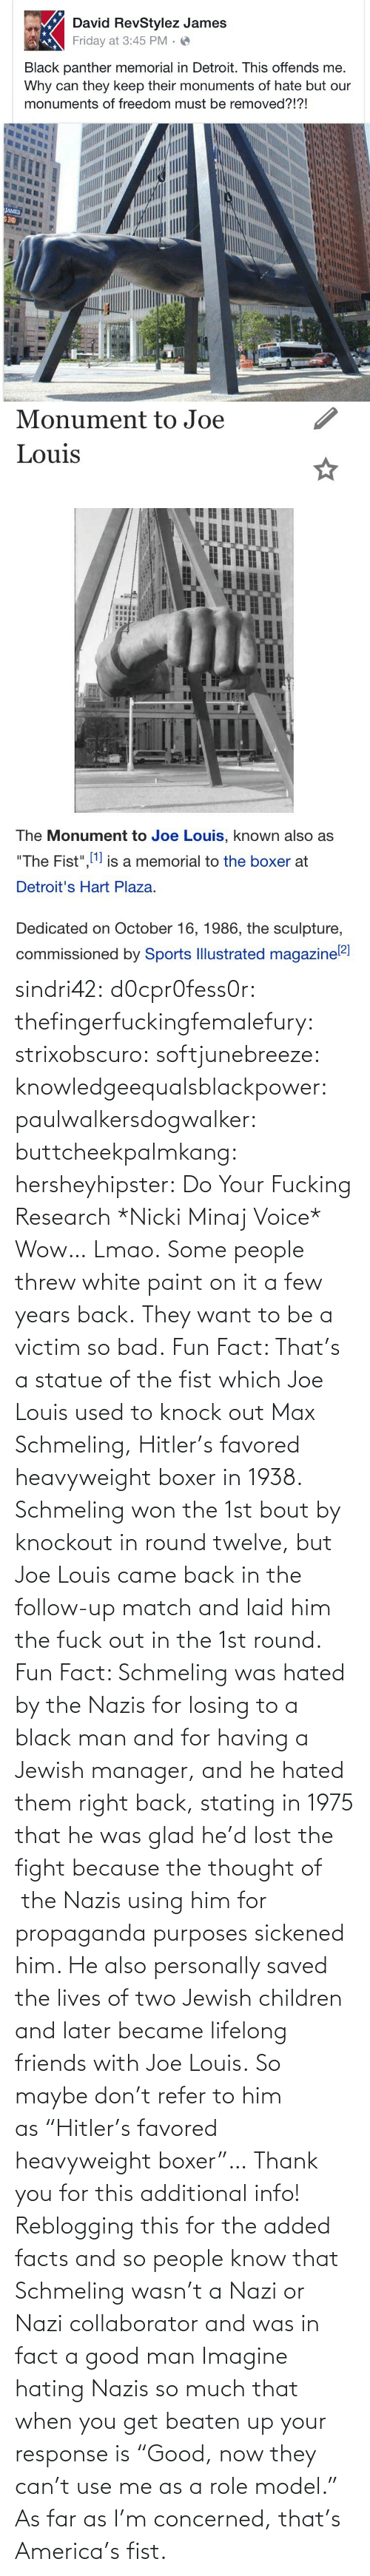 "maybe: sindri42:  d0cpr0fess0r:  thefingerfuckingfemalefury:  strixobscuro:  softjunebreeze:  knowledgeequalsblackpower:  paulwalkersdogwalker:   buttcheekpalmkang:   hersheyhipster:  Do Your Fucking Research *Nicki Minaj Voice*    Wow… Lmao.   Some people threw white paint on it a few years back.   They want to be a victim so bad.  Fun Fact: That's a statue of the fist which Joe Louis used to knock out Max Schmeling, Hitler's favored heavyweight boxer in 1938. Schmeling won the 1st bout by knockout in round twelve, but Joe Louis came back in the follow-up match and laid him the fuck out in the 1st round.  Fun Fact: Schmeling was hated by the Nazis for losing to a black man and for having a Jewish manager, and he hated them right back, stating in 1975 that he was glad he'd lost the fight because the thought of  the Nazis using him for propaganda purposes sickened him. He also personally saved the lives of two Jewish children and later became lifelong friends with Joe Louis. So maybe don't refer to him as ""Hitler's favored heavyweight boxer""…  Thank you for this additional info! Reblogging this for the added facts and so people know that Schmeling wasn't a Nazi or Nazi collaborator and was in fact a good man   Imagine hating Nazis so much that when you get beaten up your response is ""Good, now they can't use me as a role model.""  As far as I'm concerned, that's America's fist."